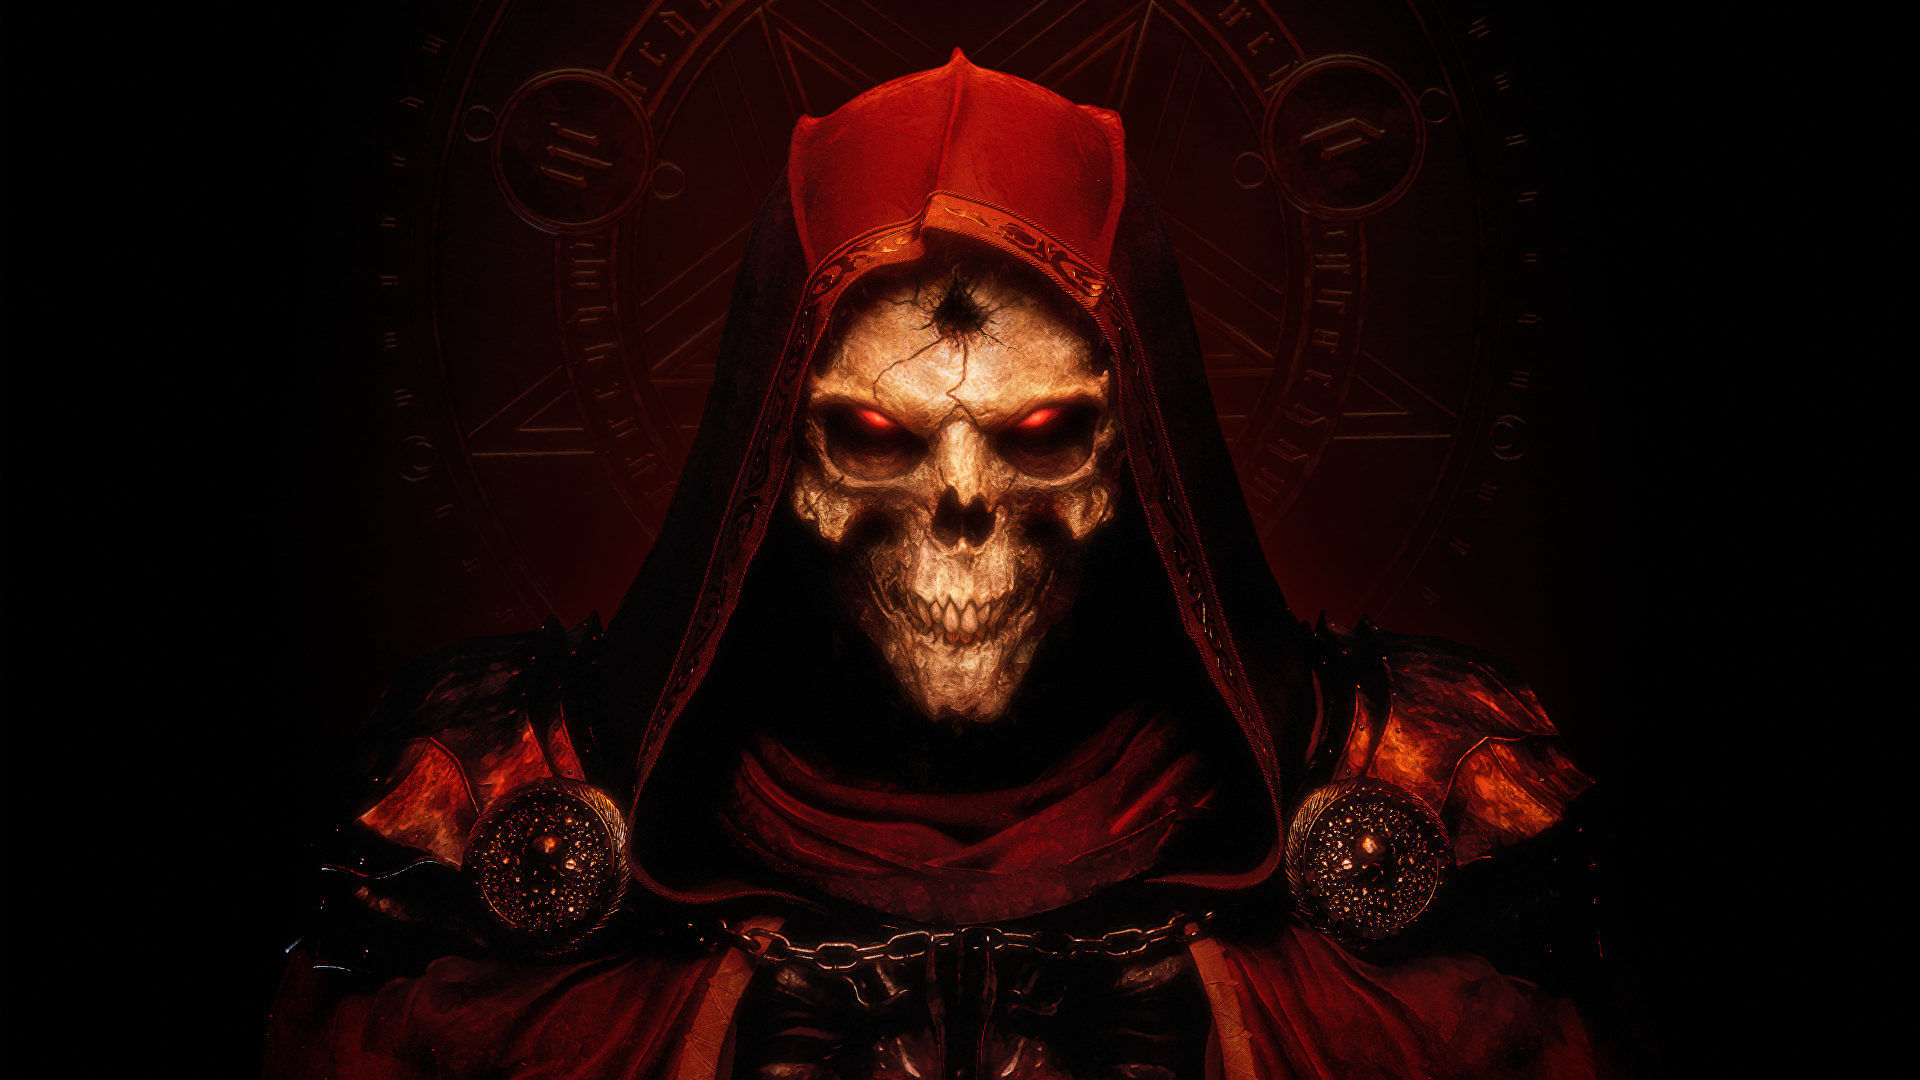 Diablo is resurrecting both Blizzard's past and its future